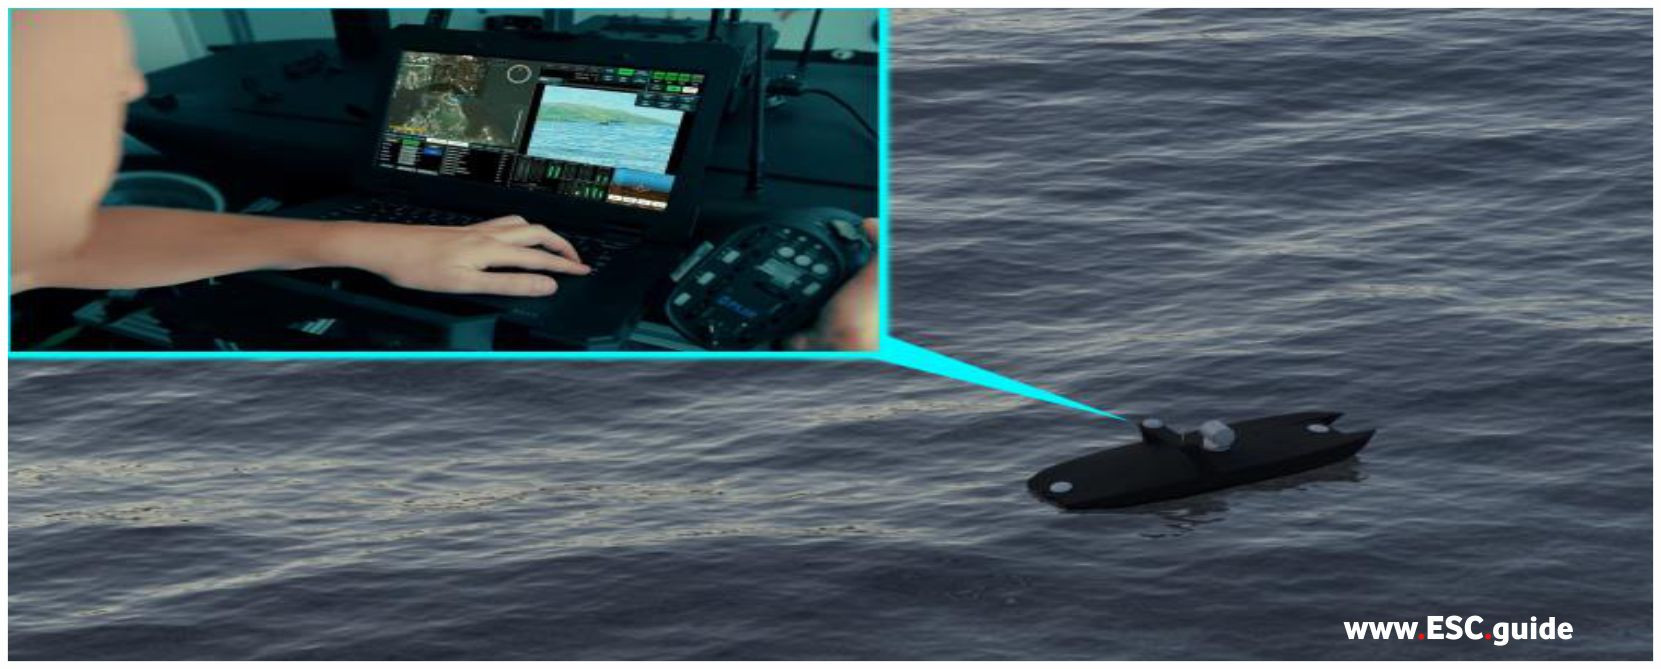 MANTAS T12 ISRs send real-time pictures of shore view to fleet command.